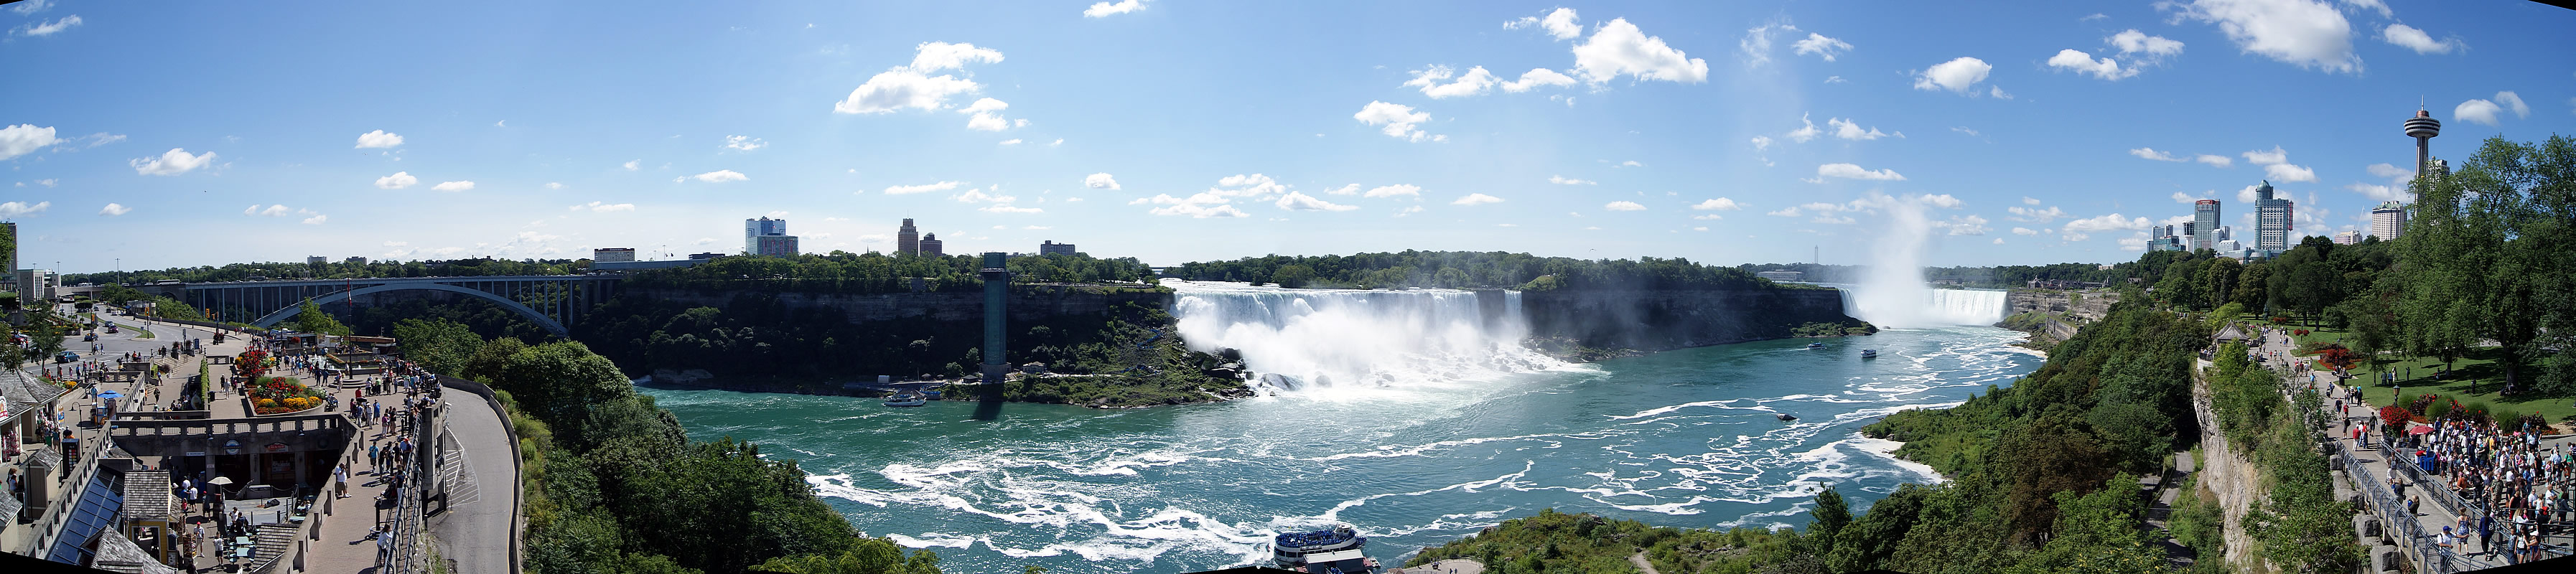 Niagara Falls Summer Panorama Photo